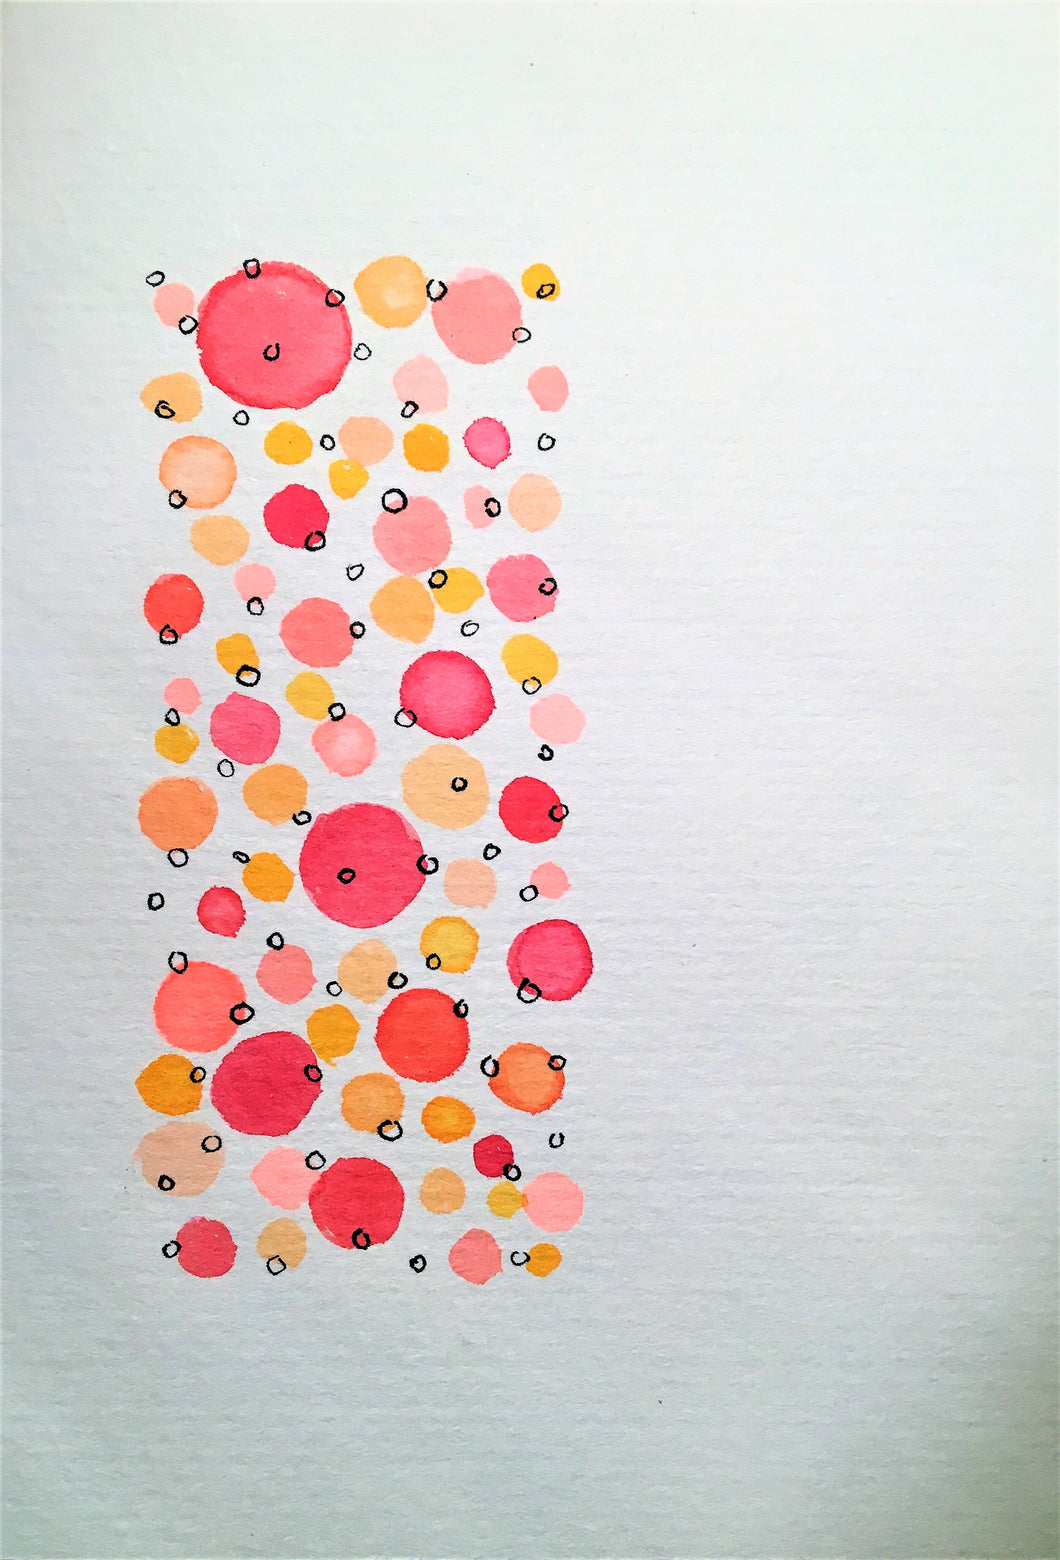 Handpainted Watercolour Greeting Card - Abstract Orange/Red and Ink Circle Design - eDgE dEsiGn London